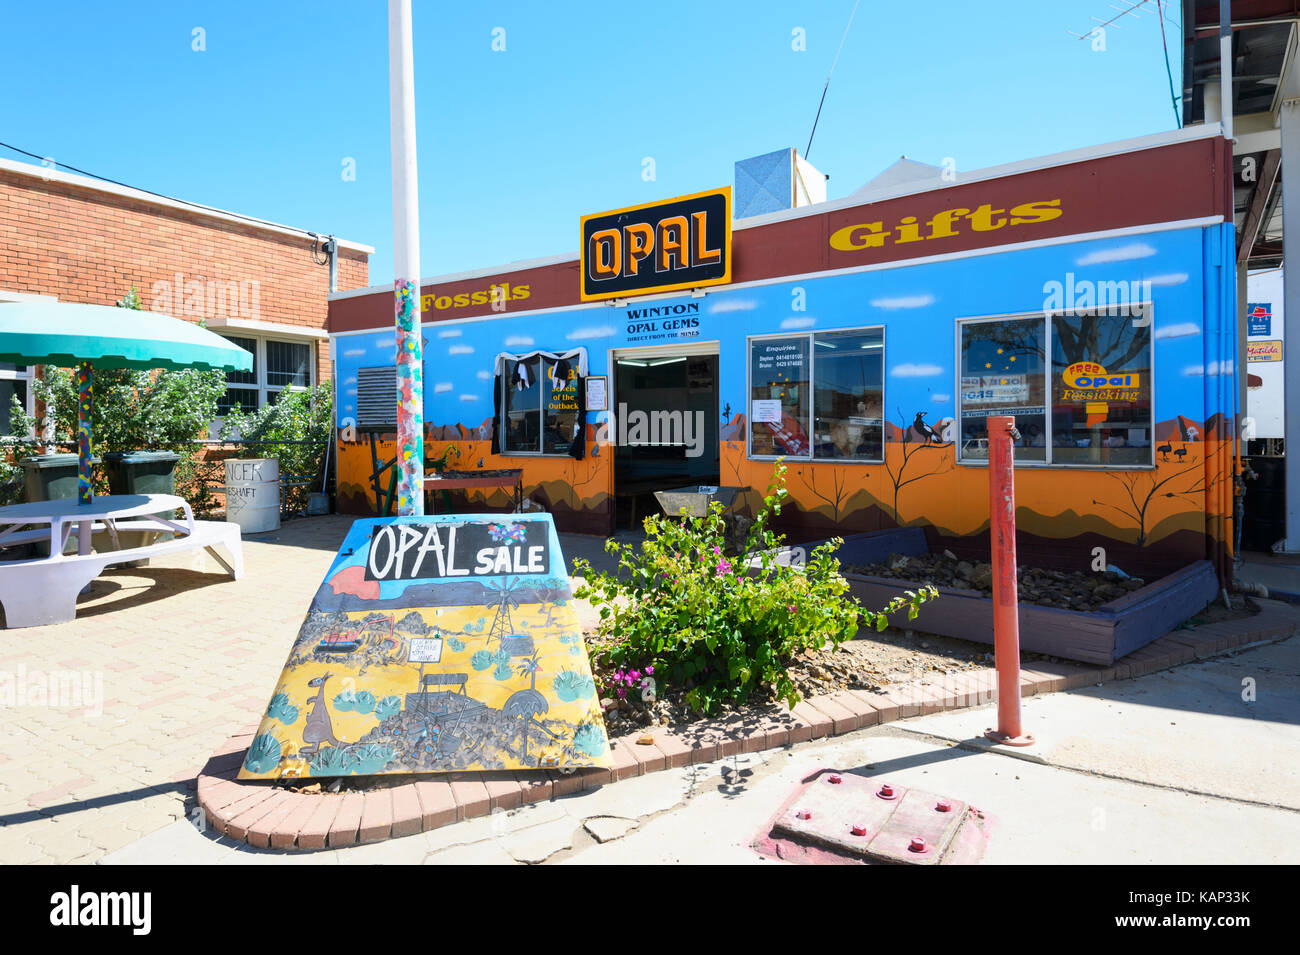 Opal shopfront in the small rural town of Winton, Queensland, QLD, Australia - Stock Image